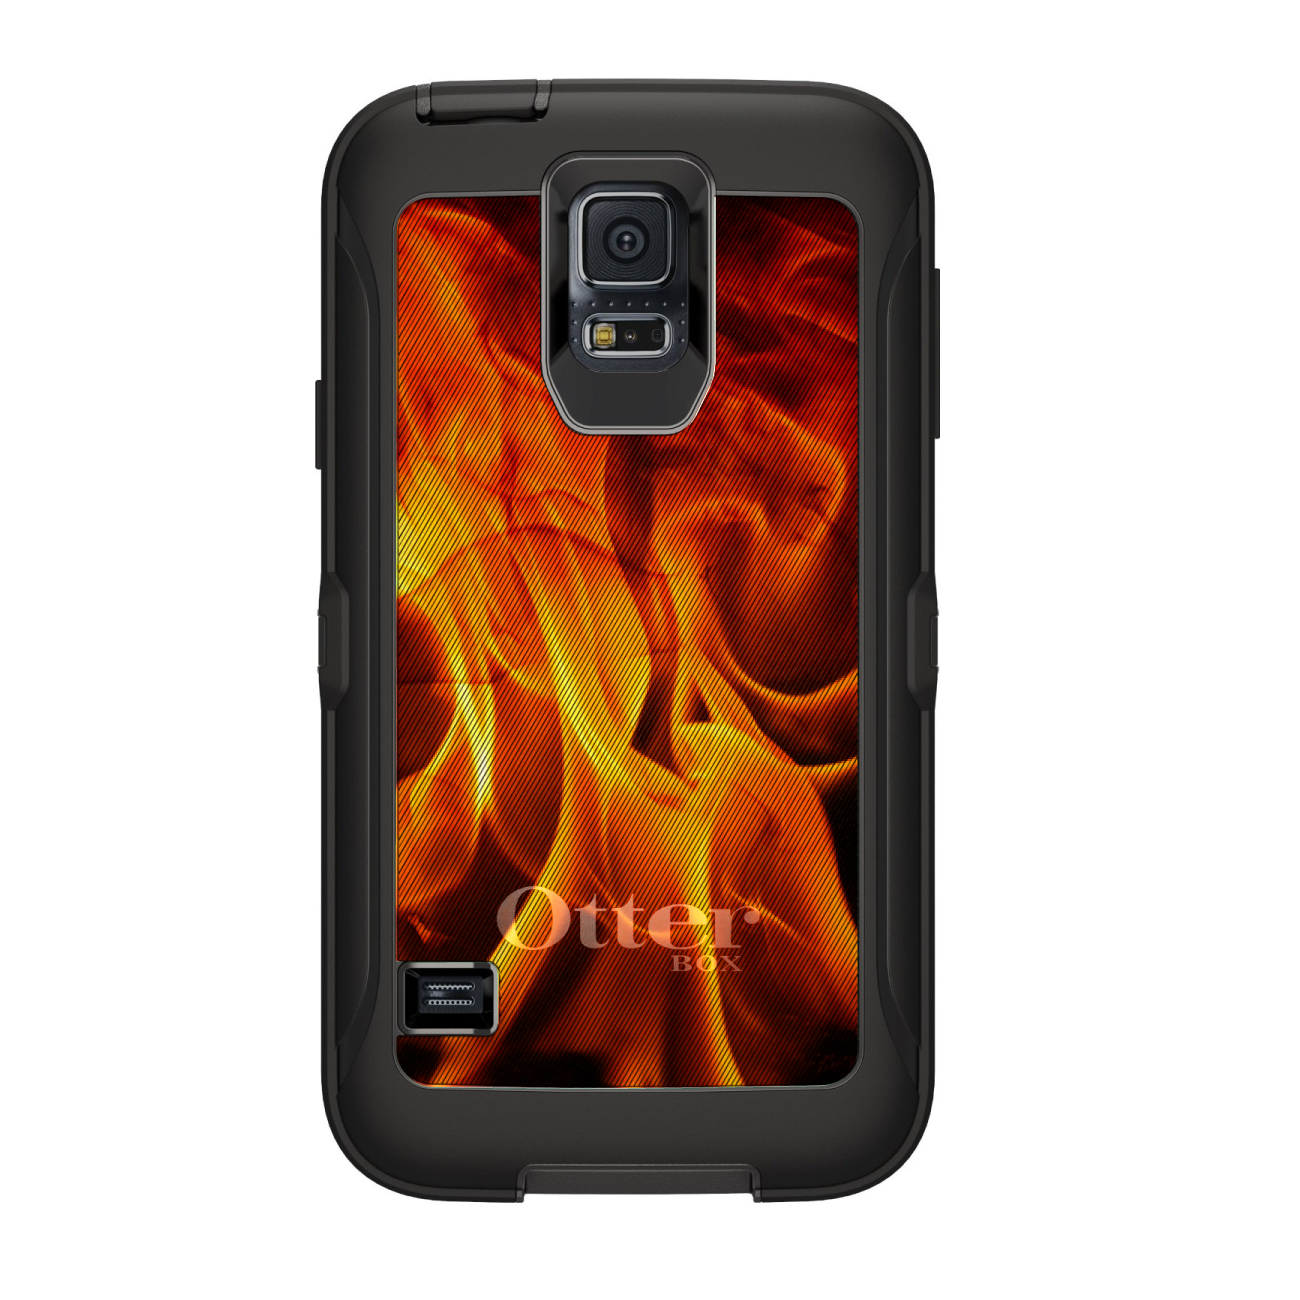 CUSTOM Black OtterBox Defender Series Case for Samsung Galaxy S5 - Red Black Flame Fire